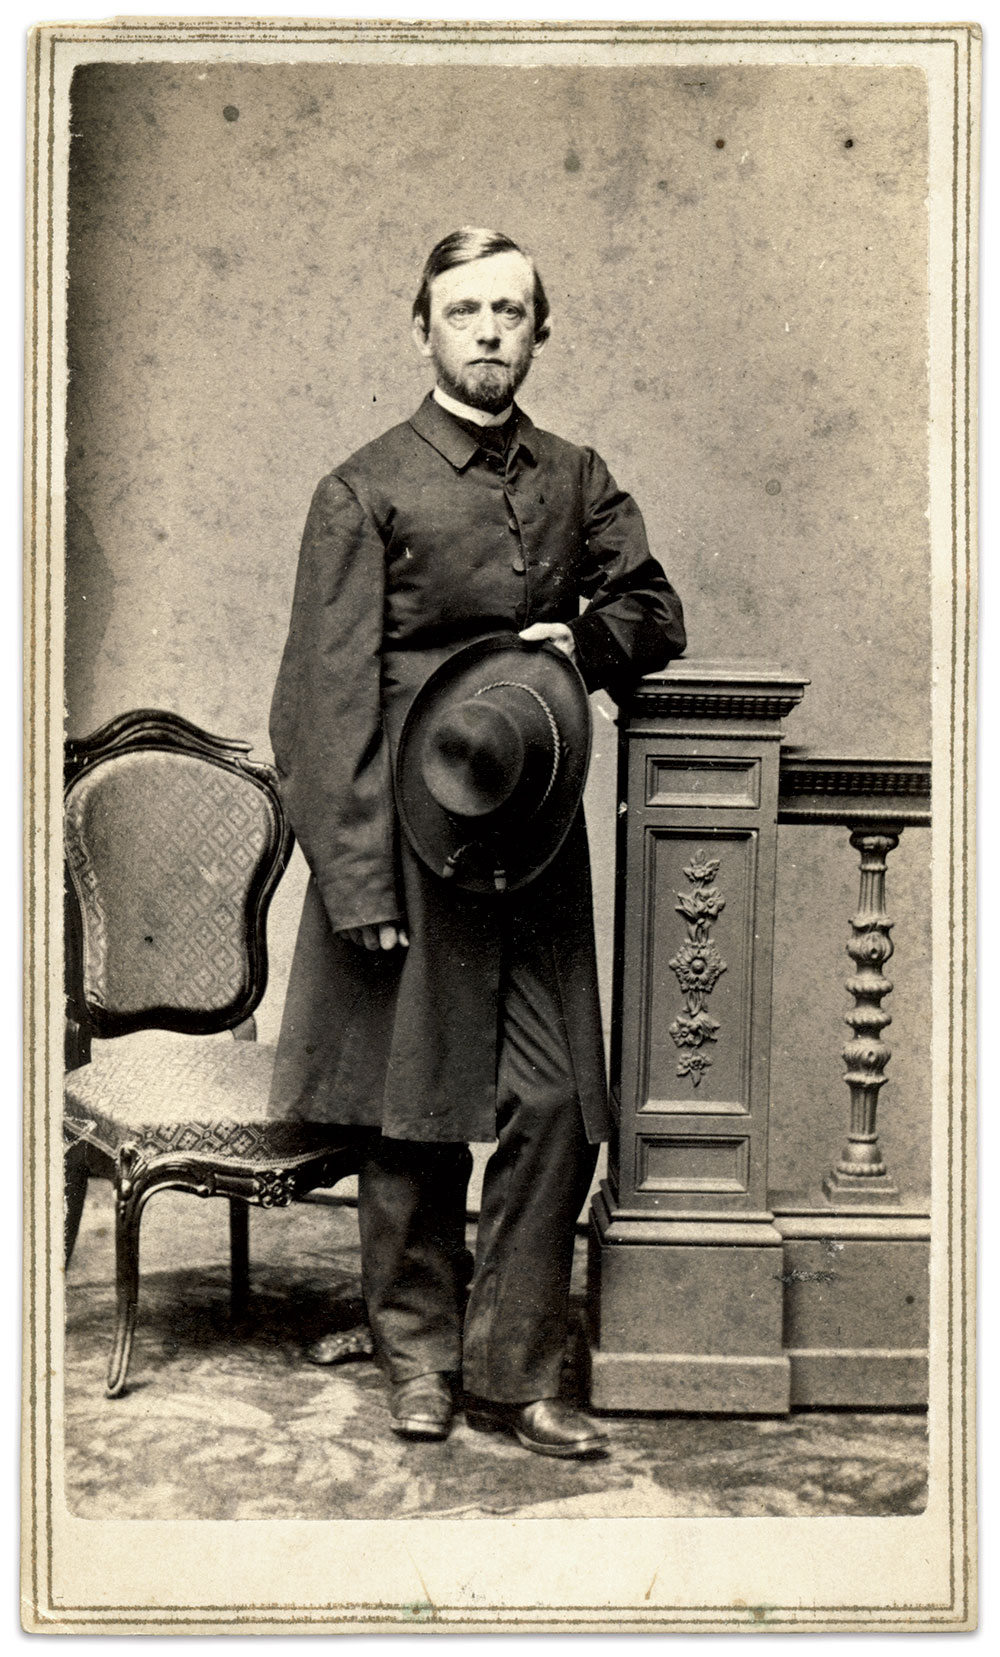 Carte de visite by Charles D. Fredricks & Co. of New York City. Rick Carlile Collection.